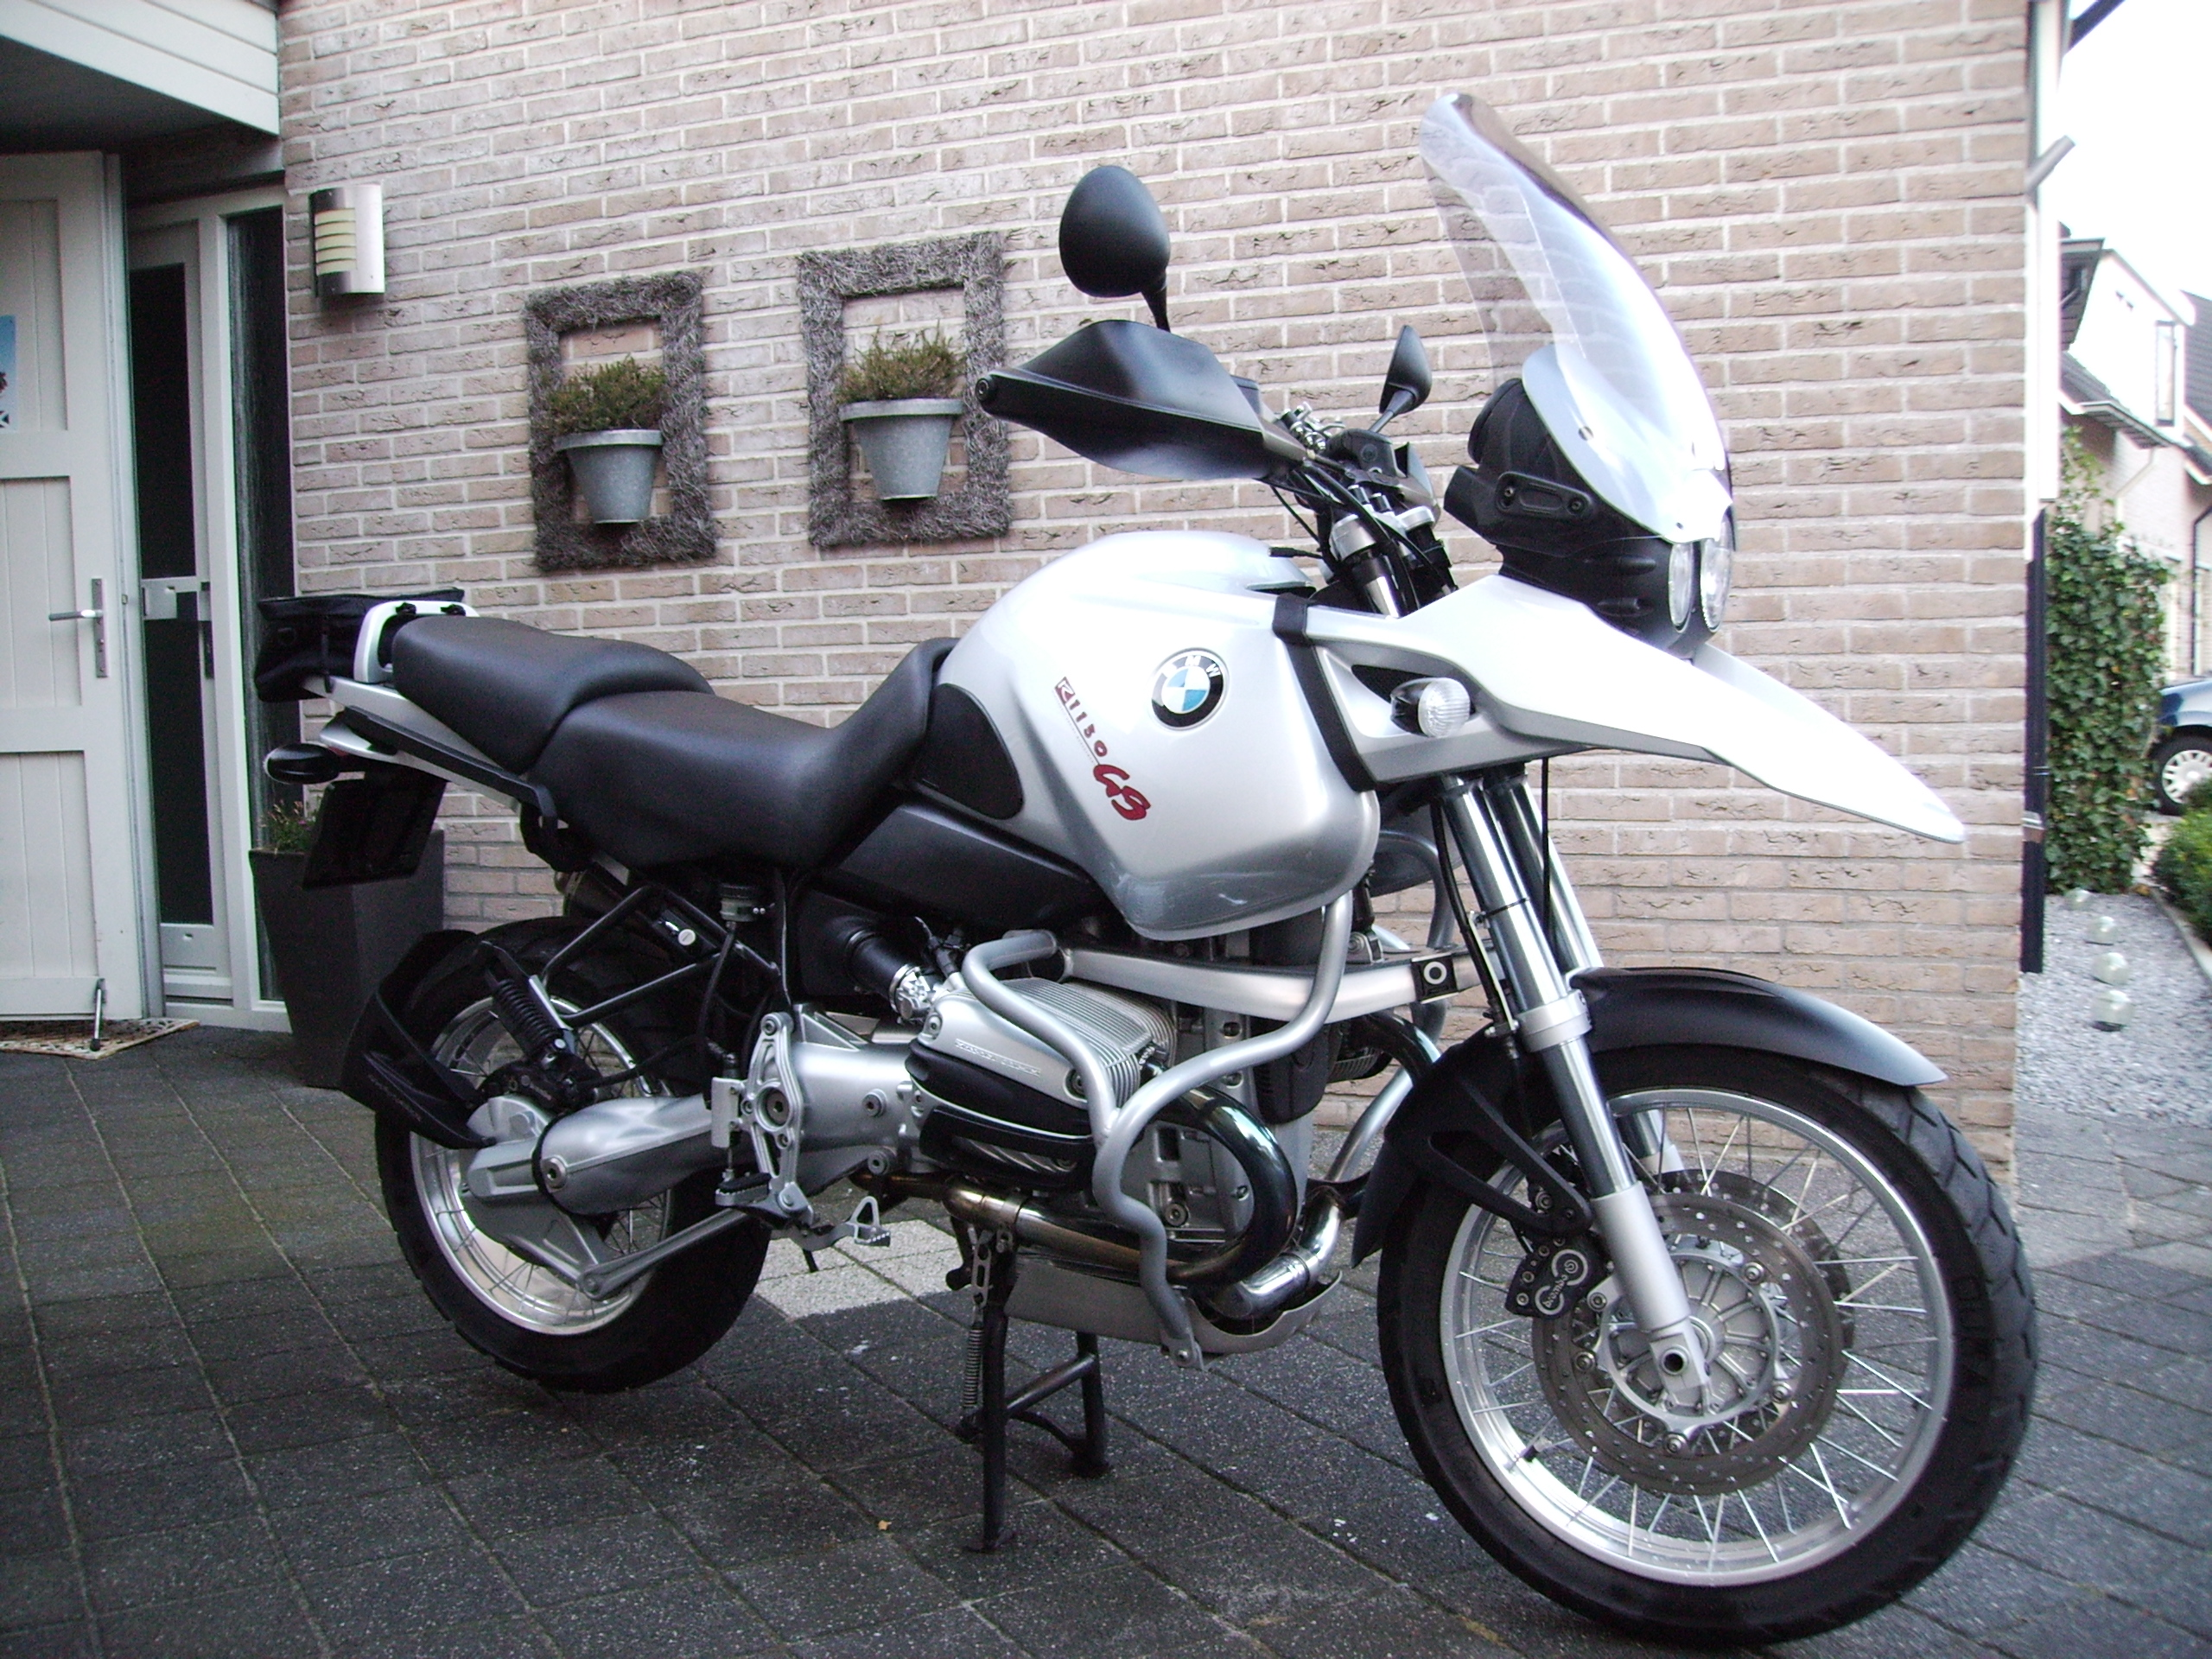 BMW R1150GS - Wikipedia